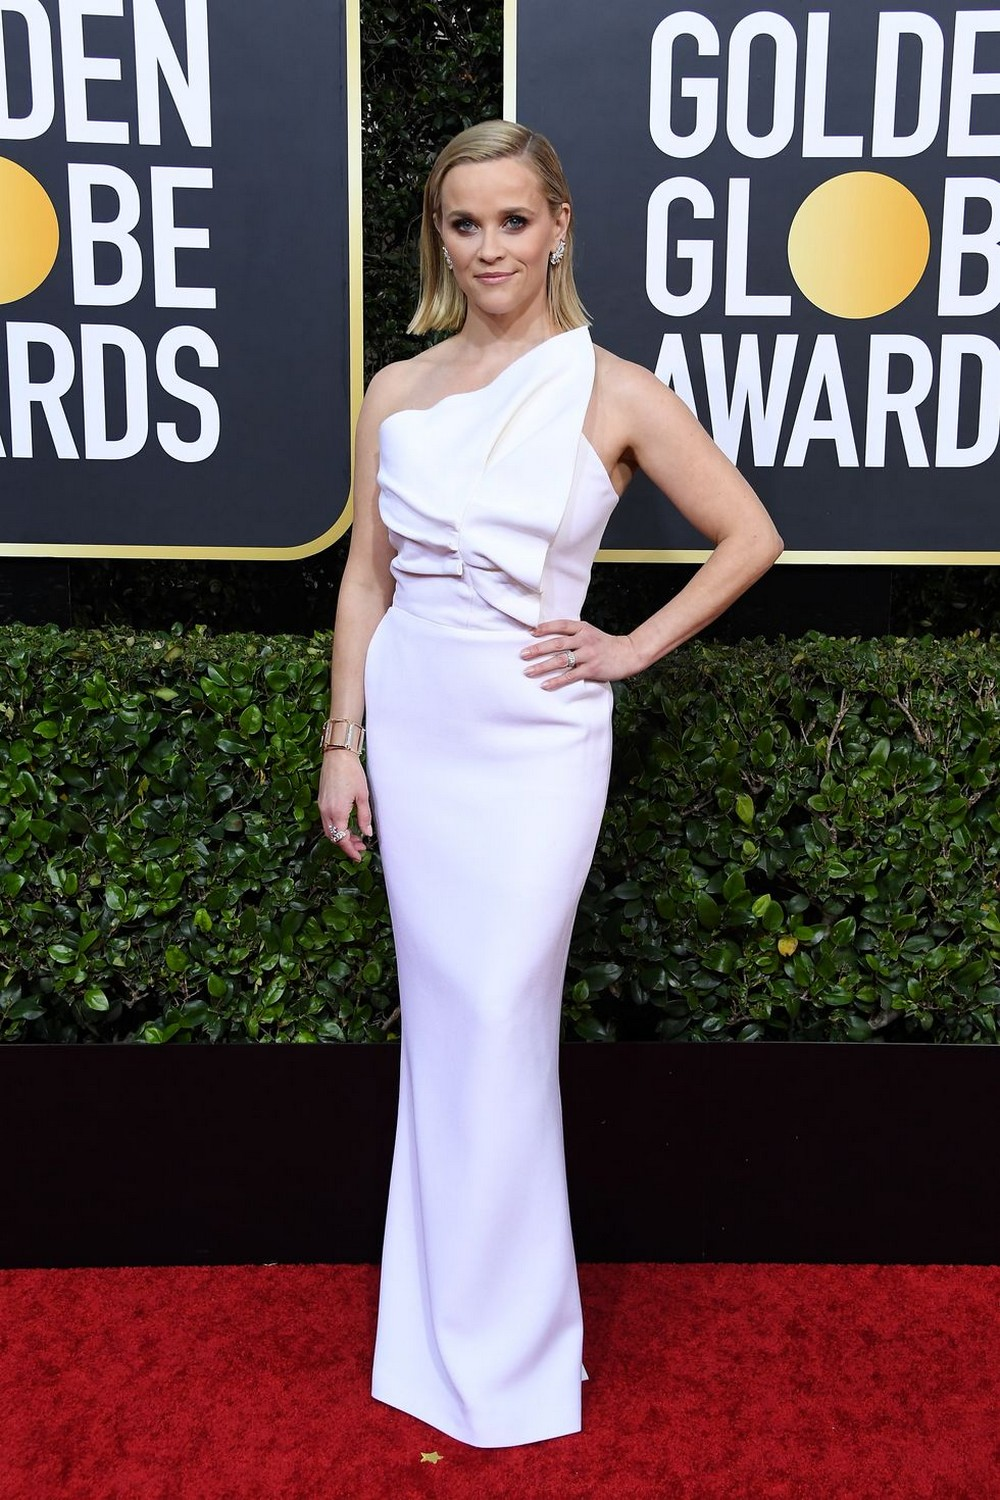 Golden Globes 2020 The Most Exciting Looks Seen On The Red